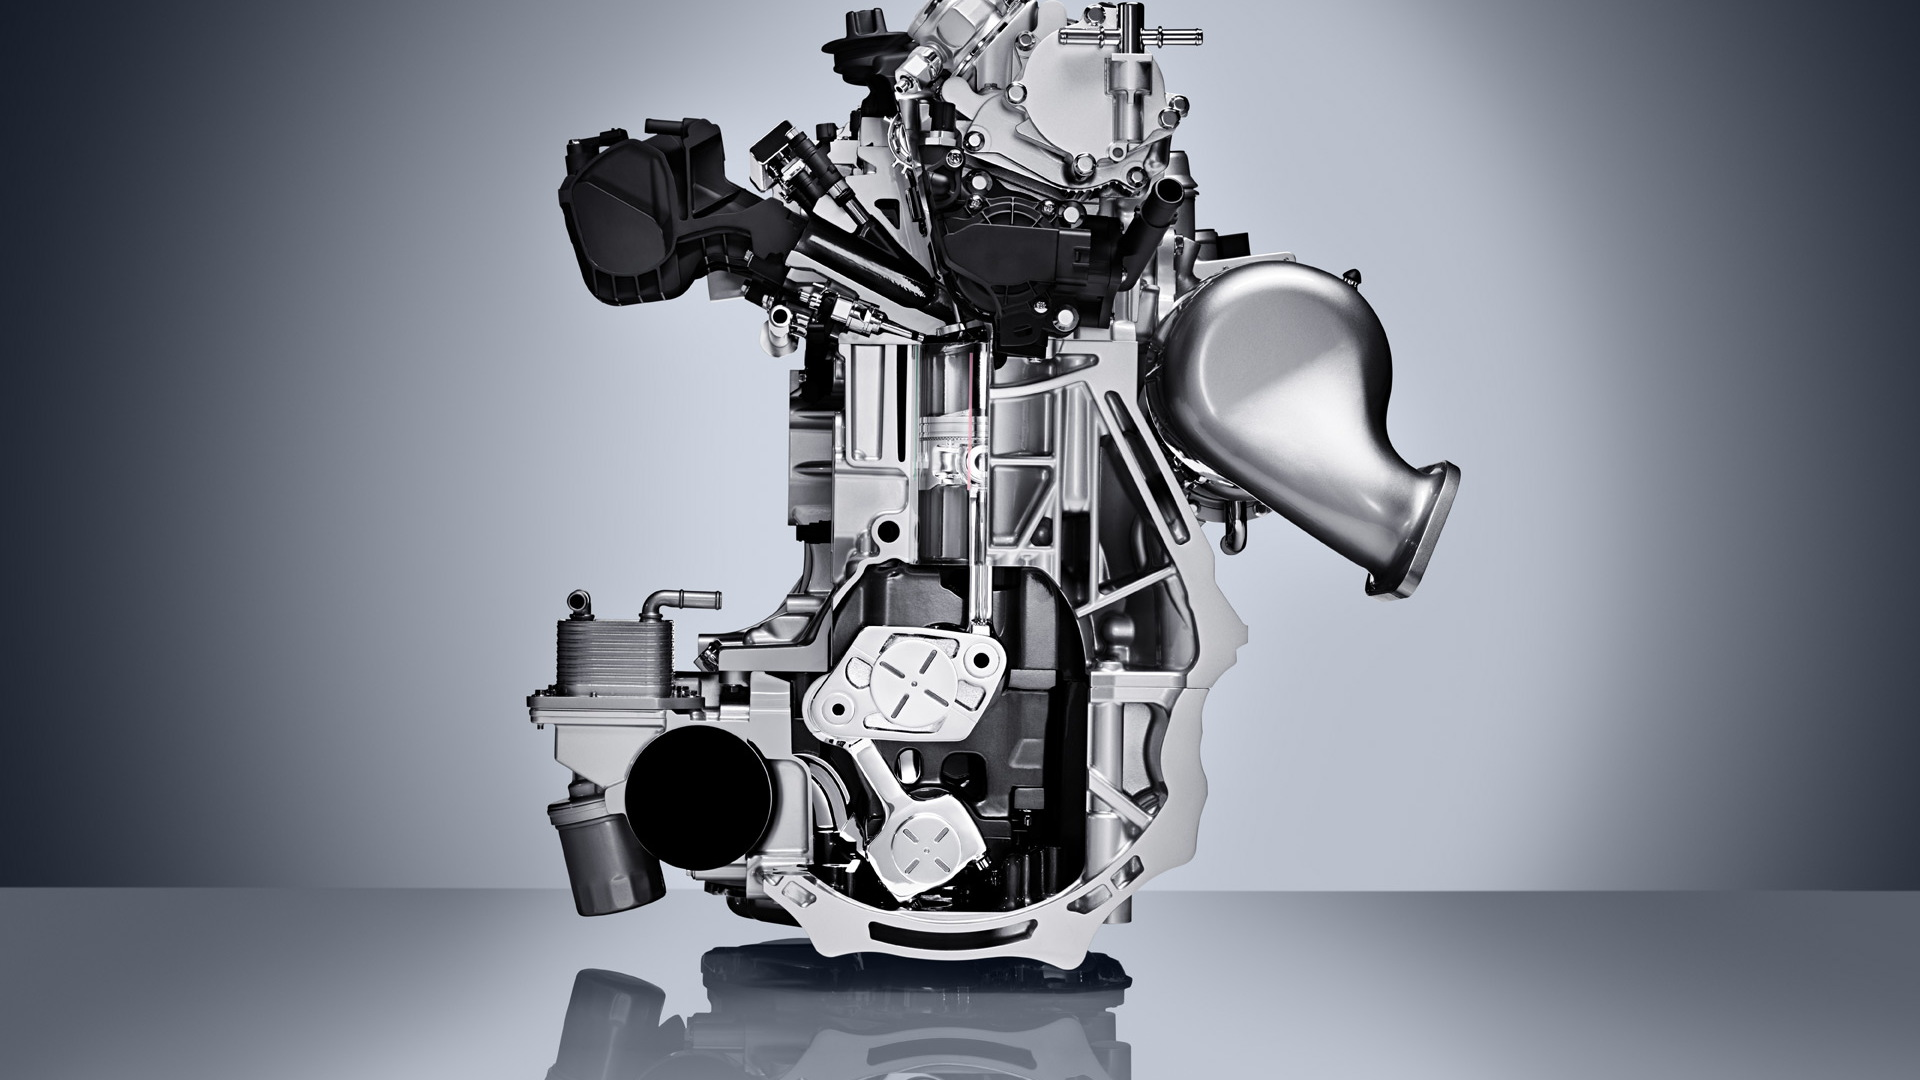 Infiniti VC-Turbo engine